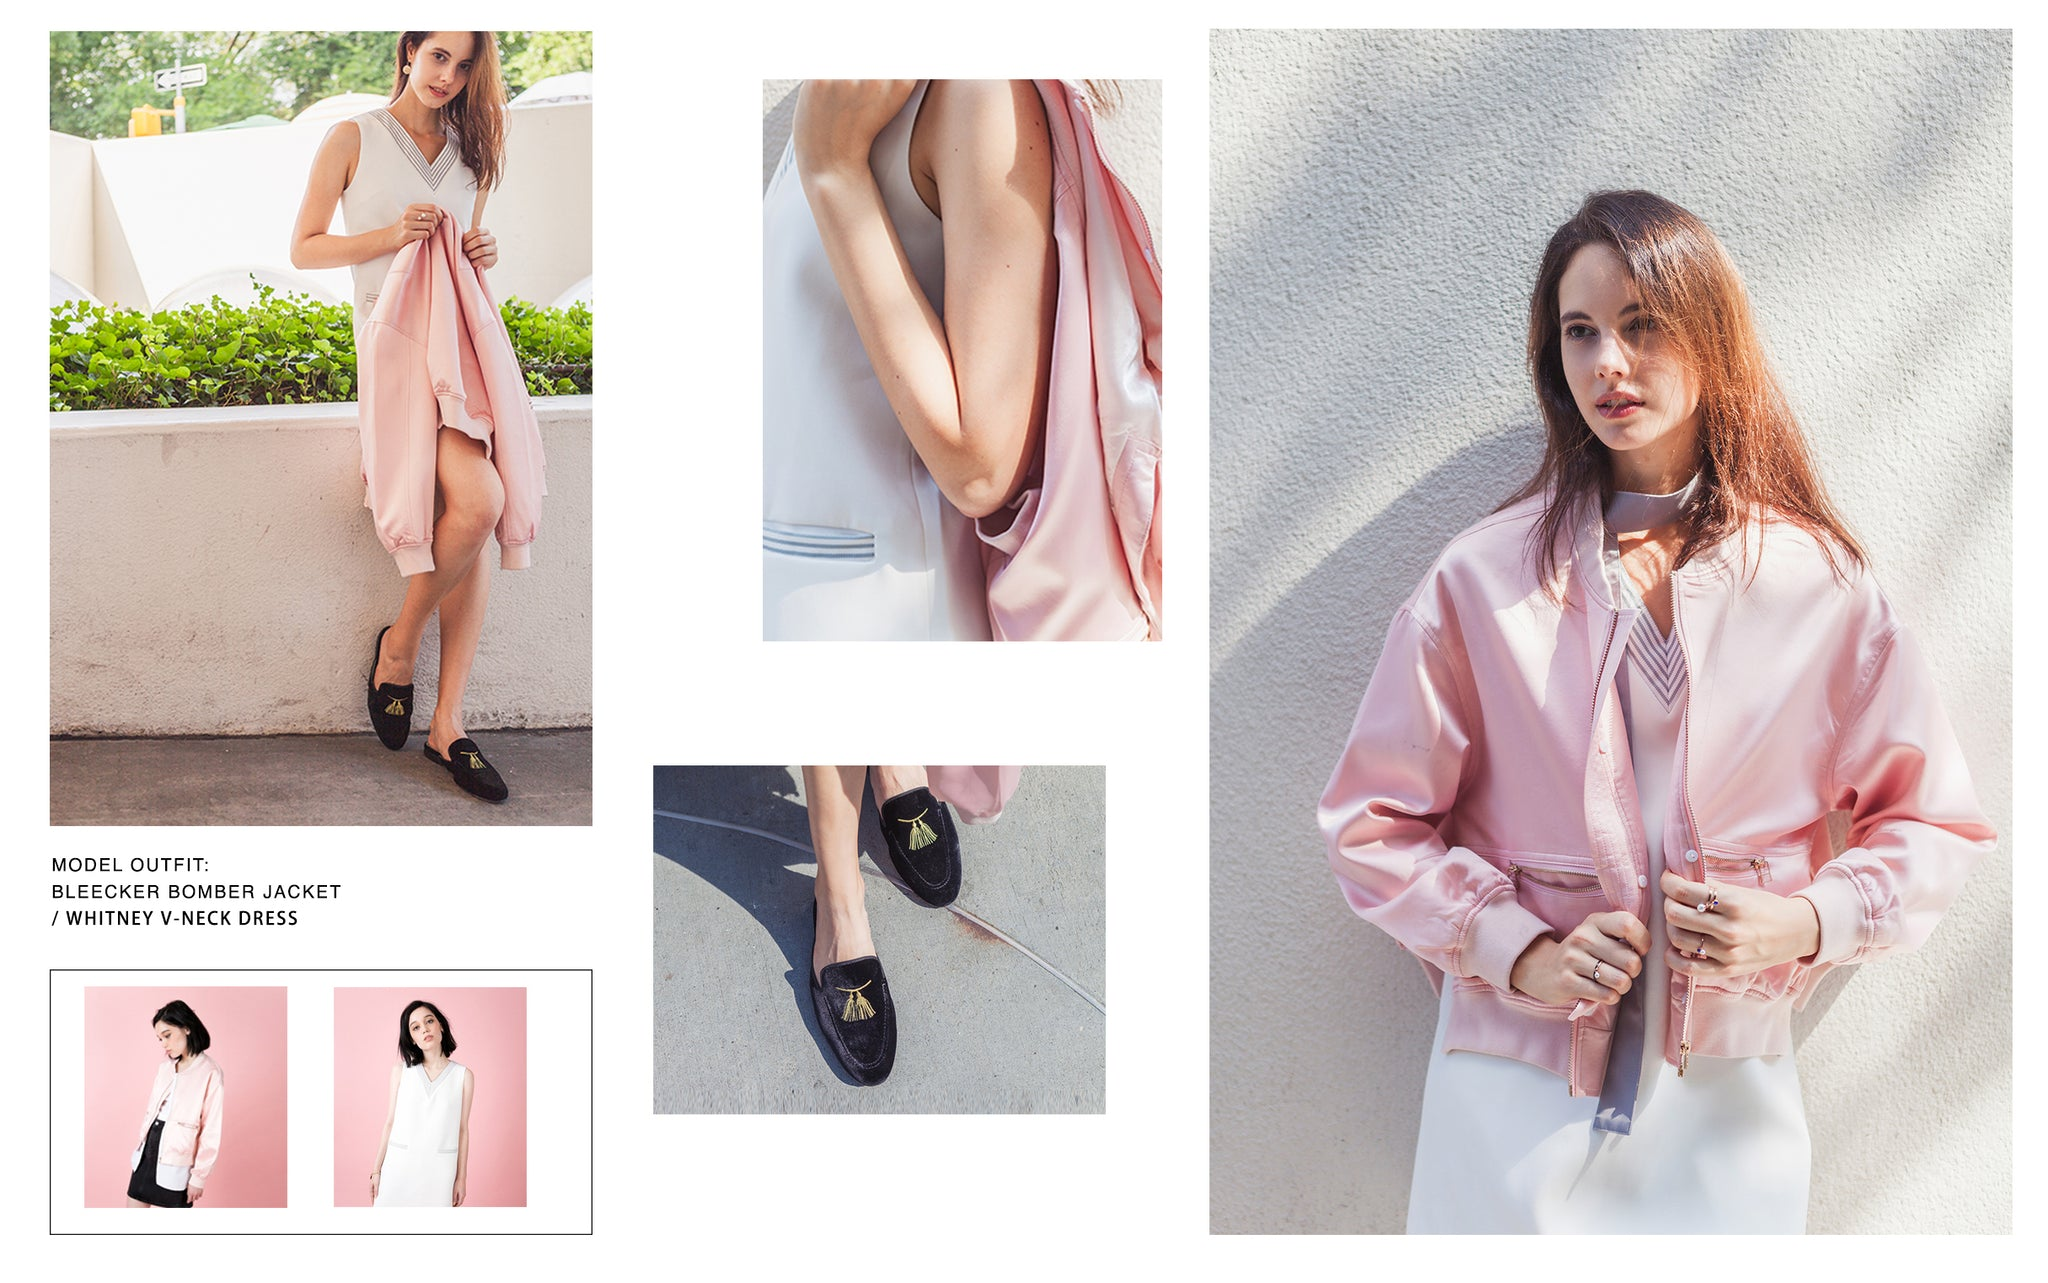 Model wearing Petite Studio's Pink Bleecker Bomber Jacket to pair with the Whitney V-neck Dress